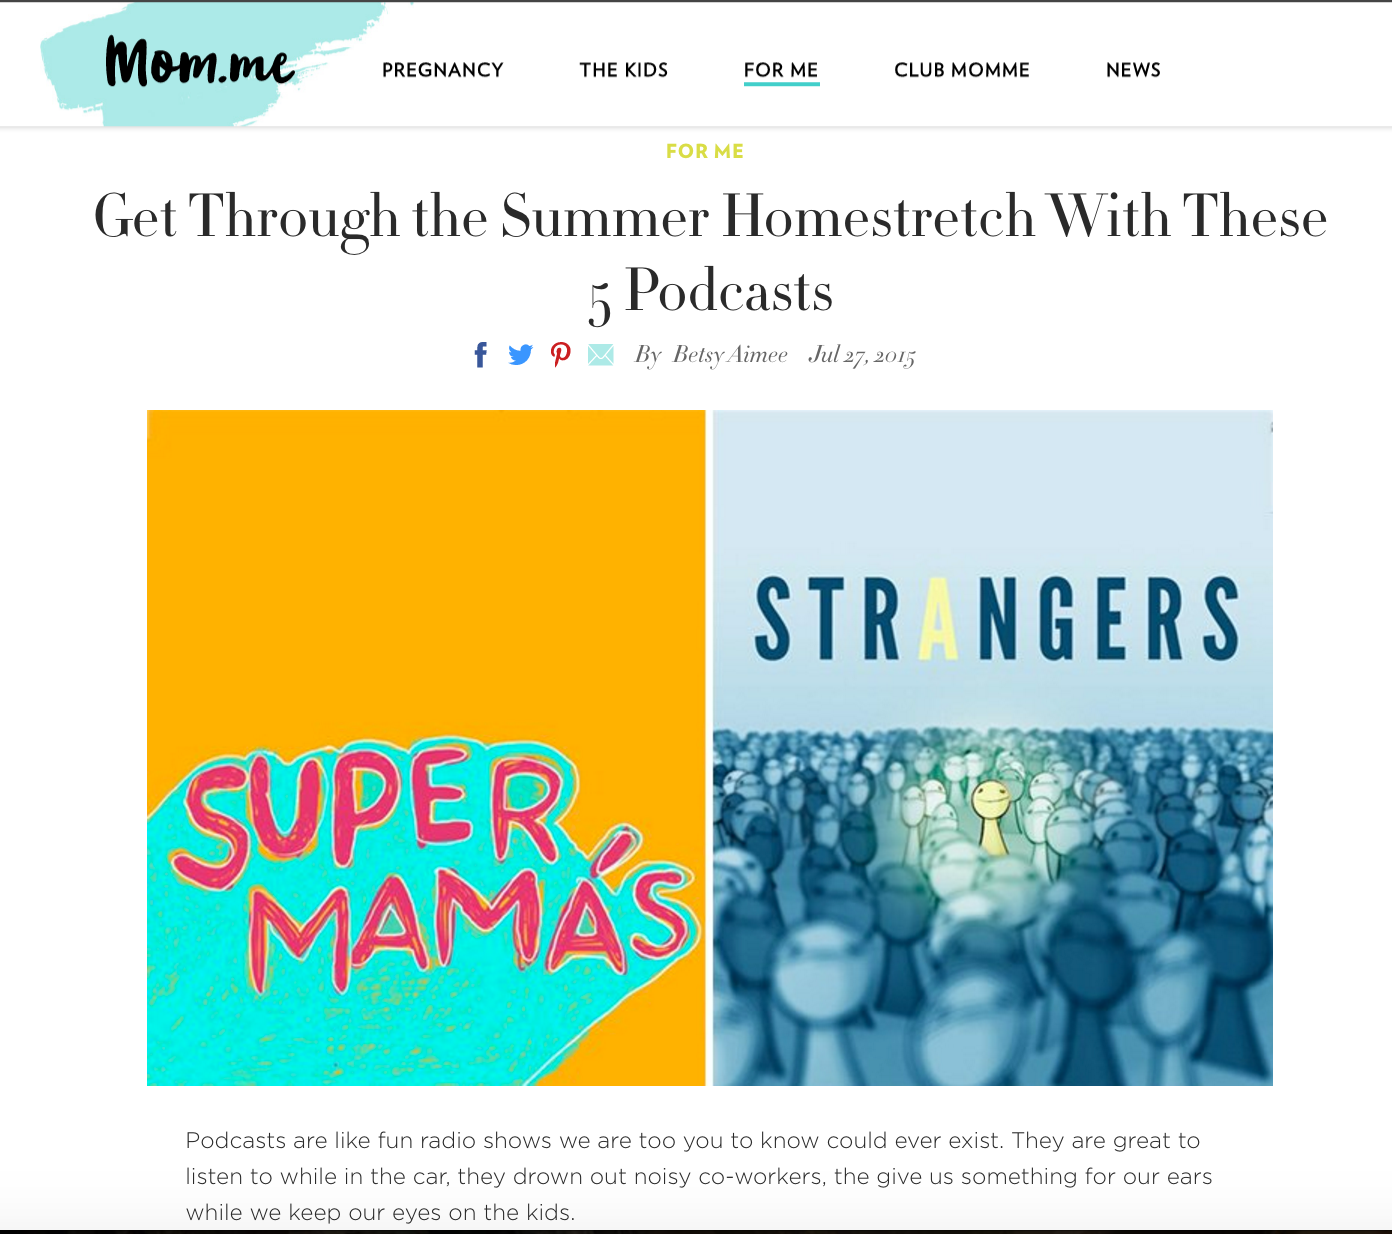 5_Best_Podcasts_for_Moms_-_For_Me_Tips___Advice___mom_me_and_iMovie.png